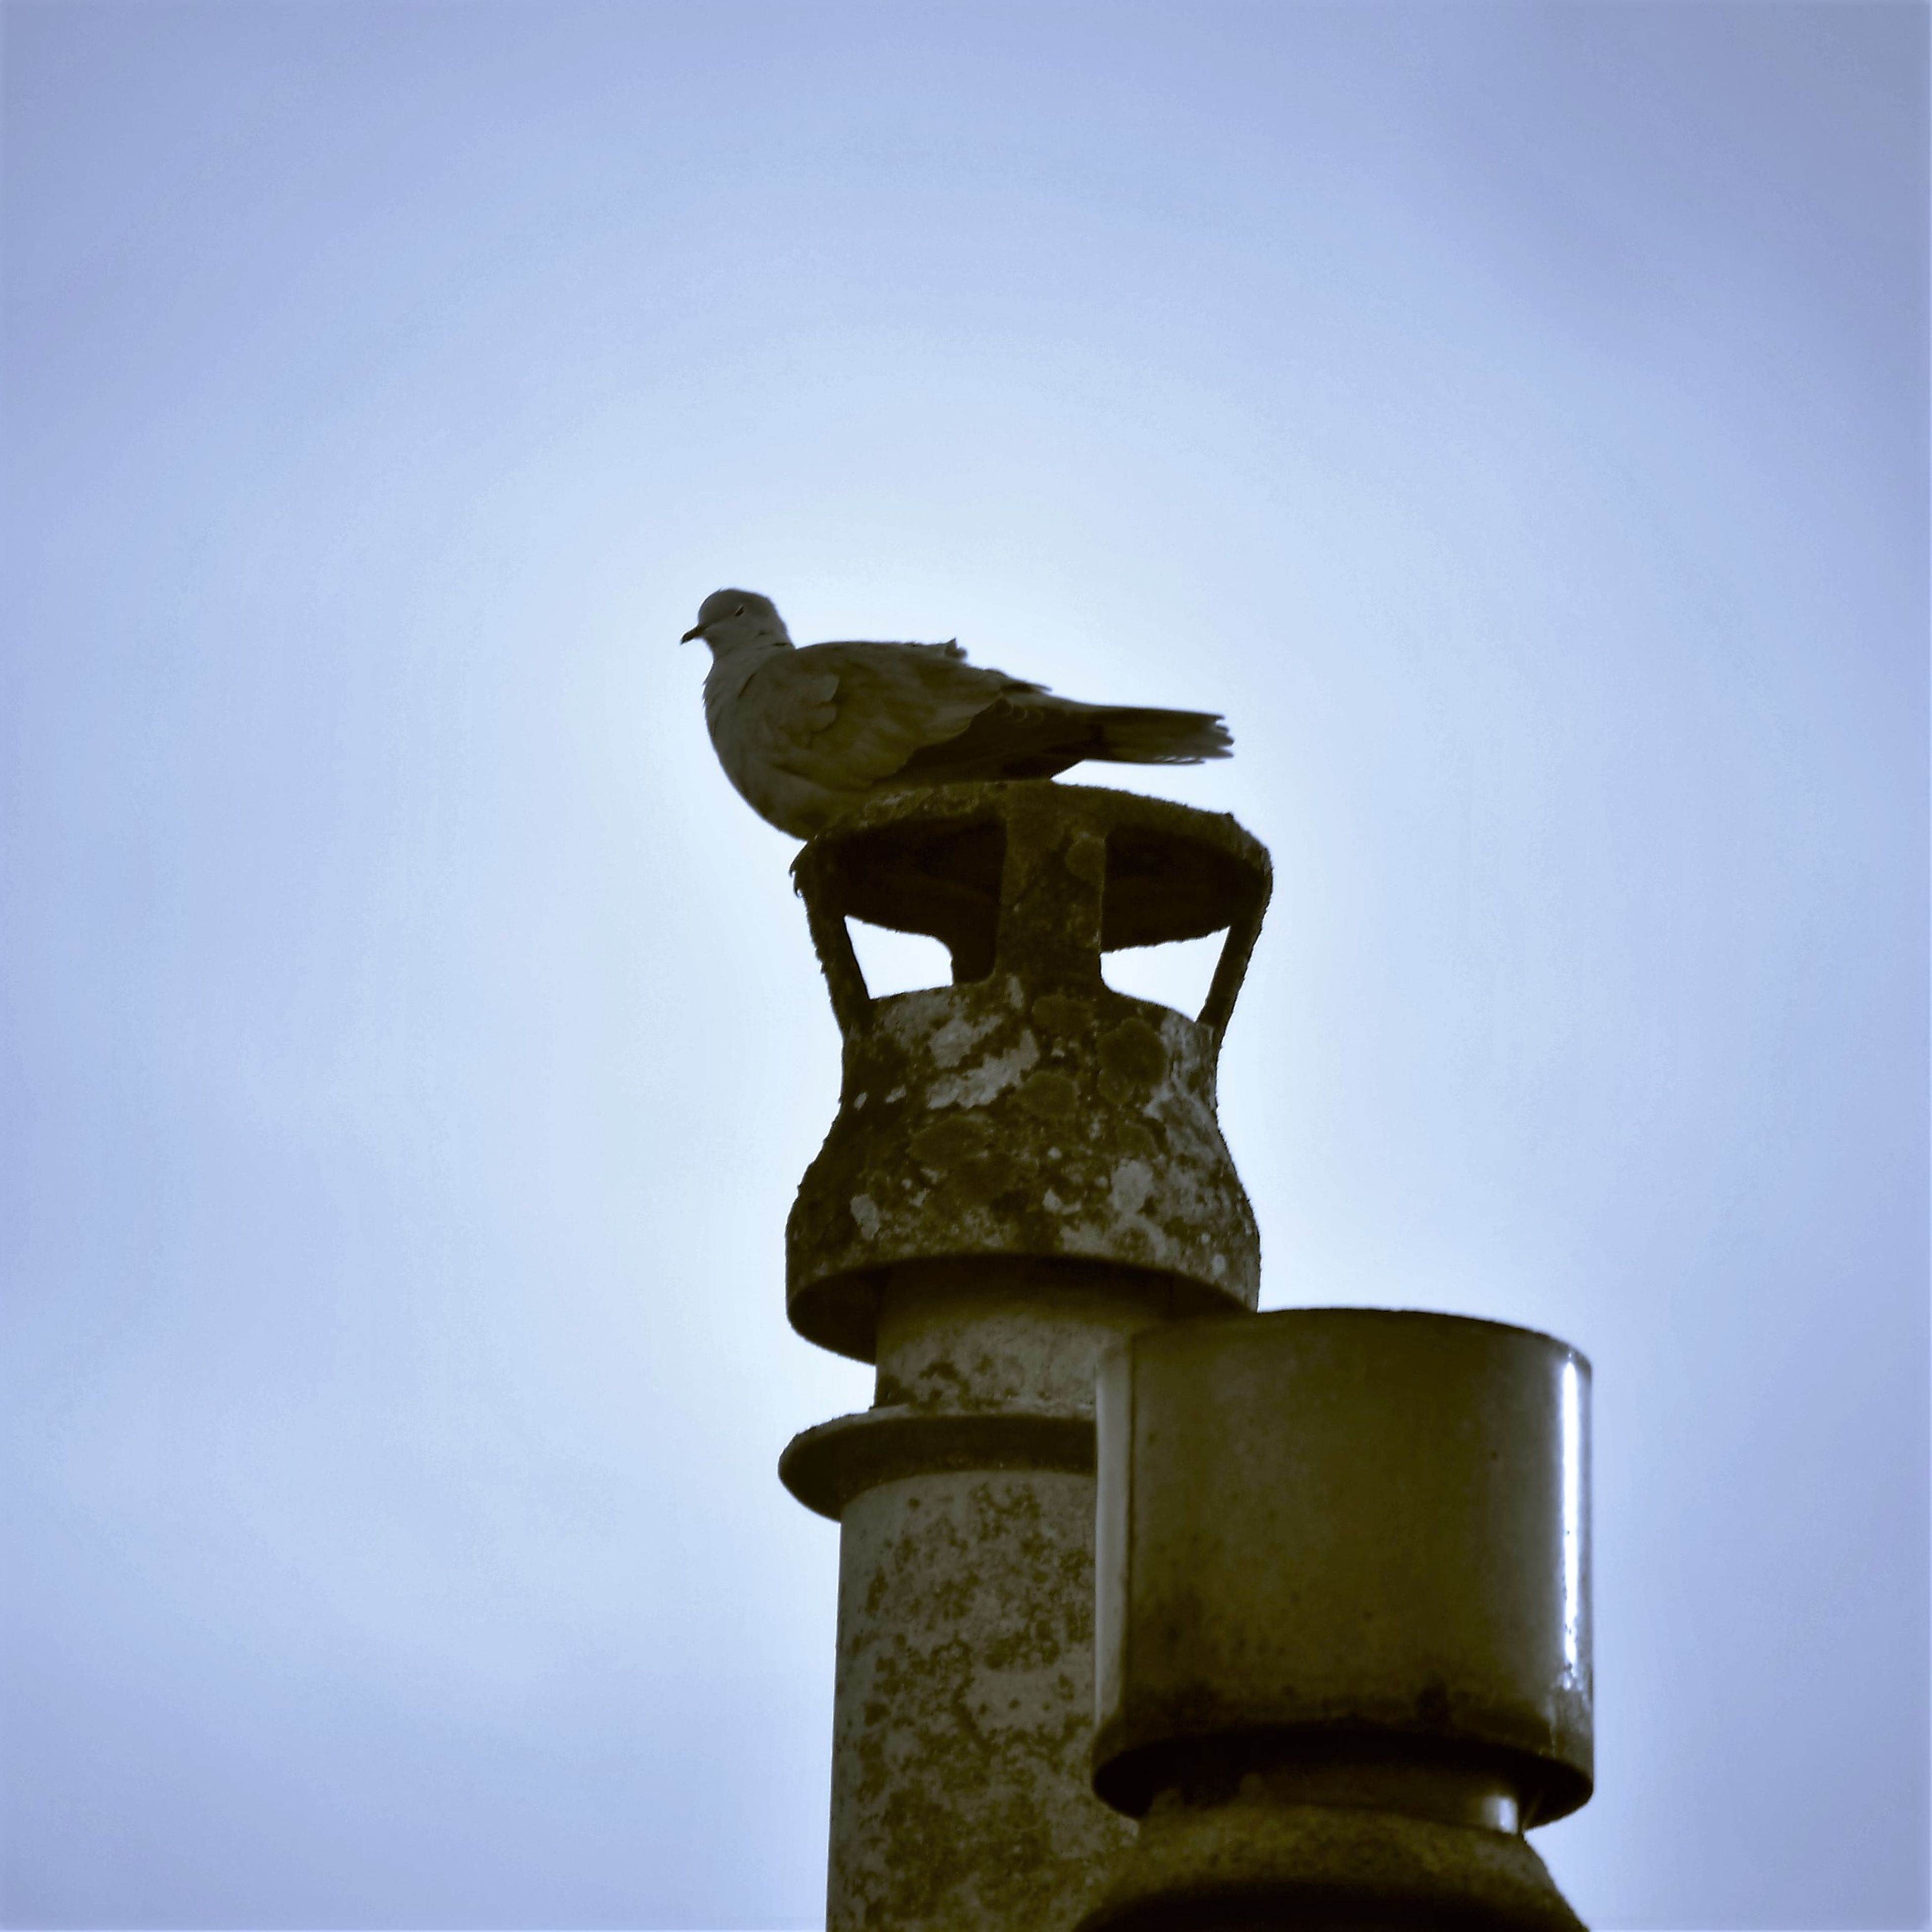 clear sky, low angle view, copy space, statue, animal themes, one animal, sculpture, human representation, animals in the wild, wildlife, bird, art, blue, art and craft, animal representation, no people, day, outdoors, perching